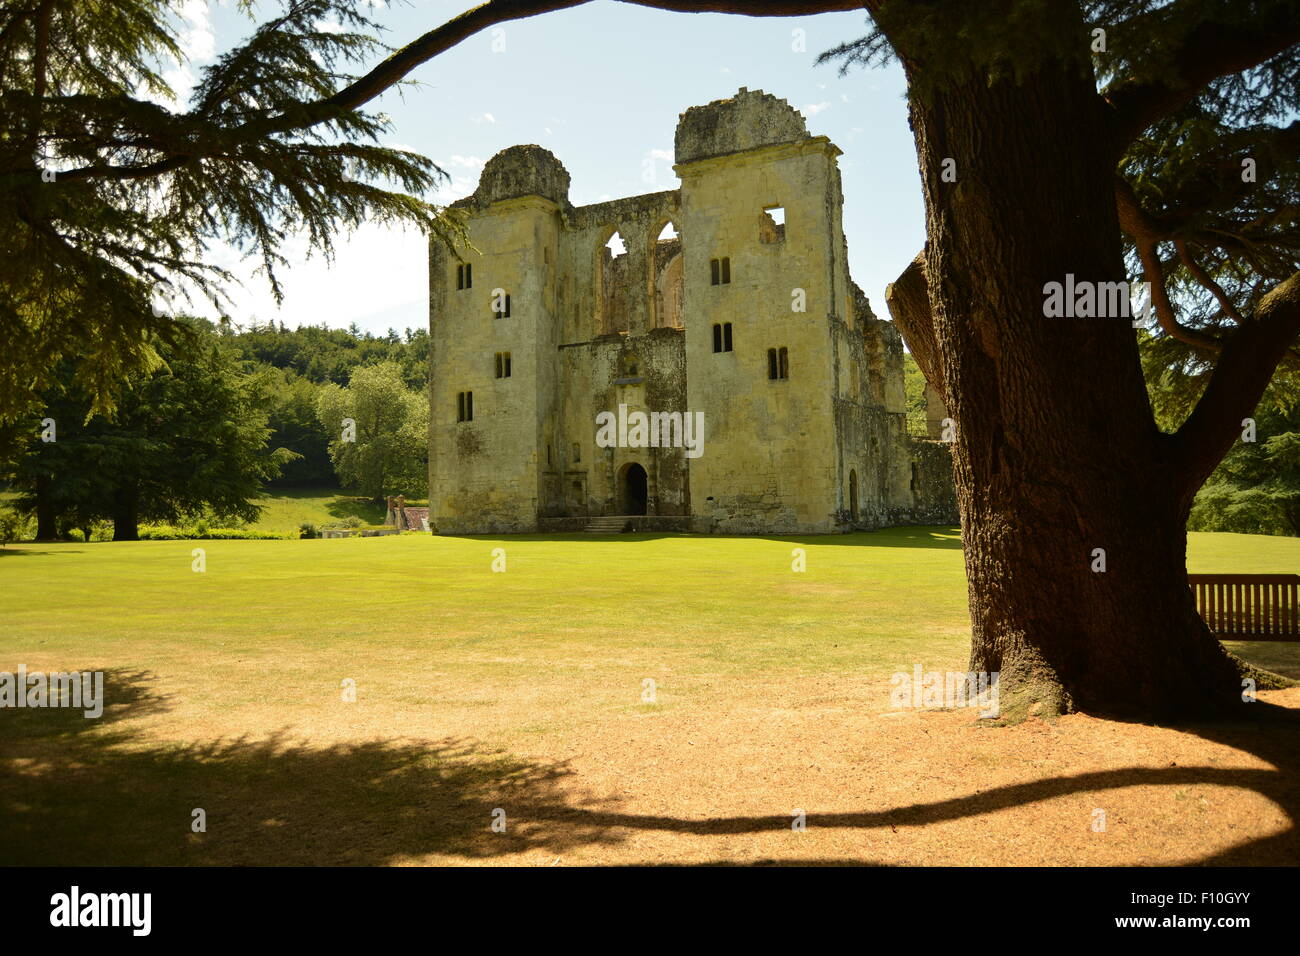 A ruined castle in the sun - Stock Image